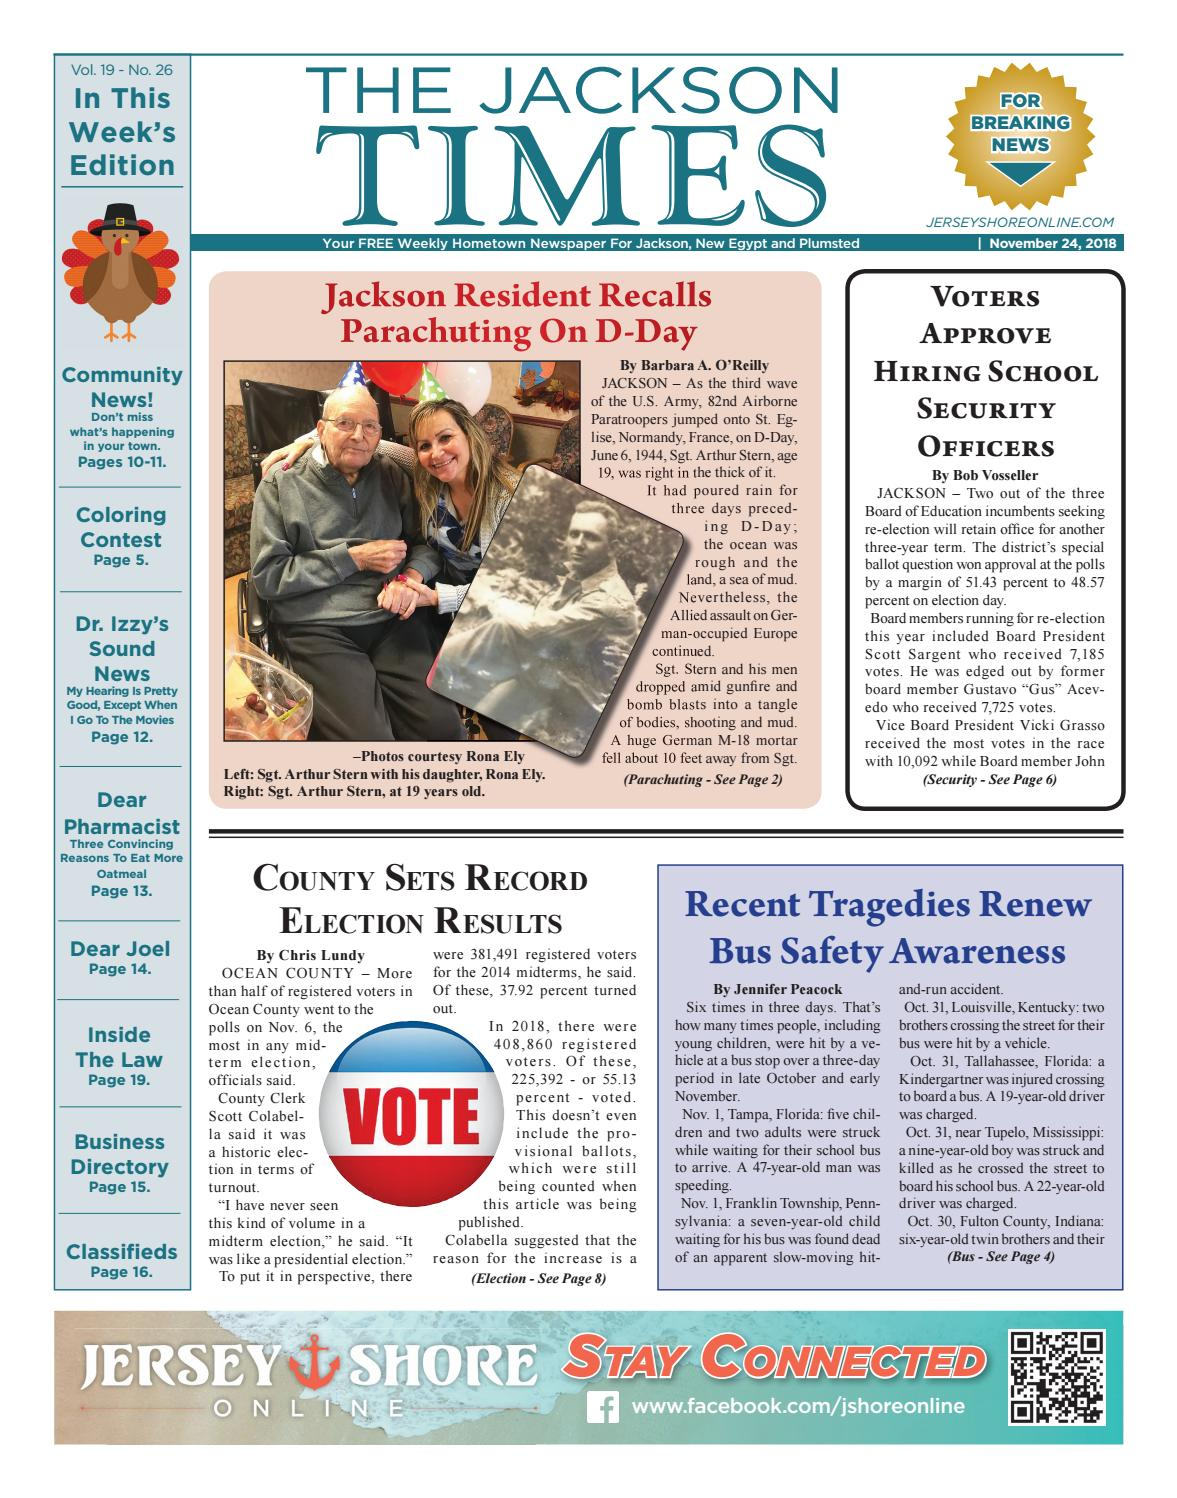 5a057b9ed1 2018-11-24 - The Jackson Times by Micromedia Publications/Jersey Shore  Online - issuu